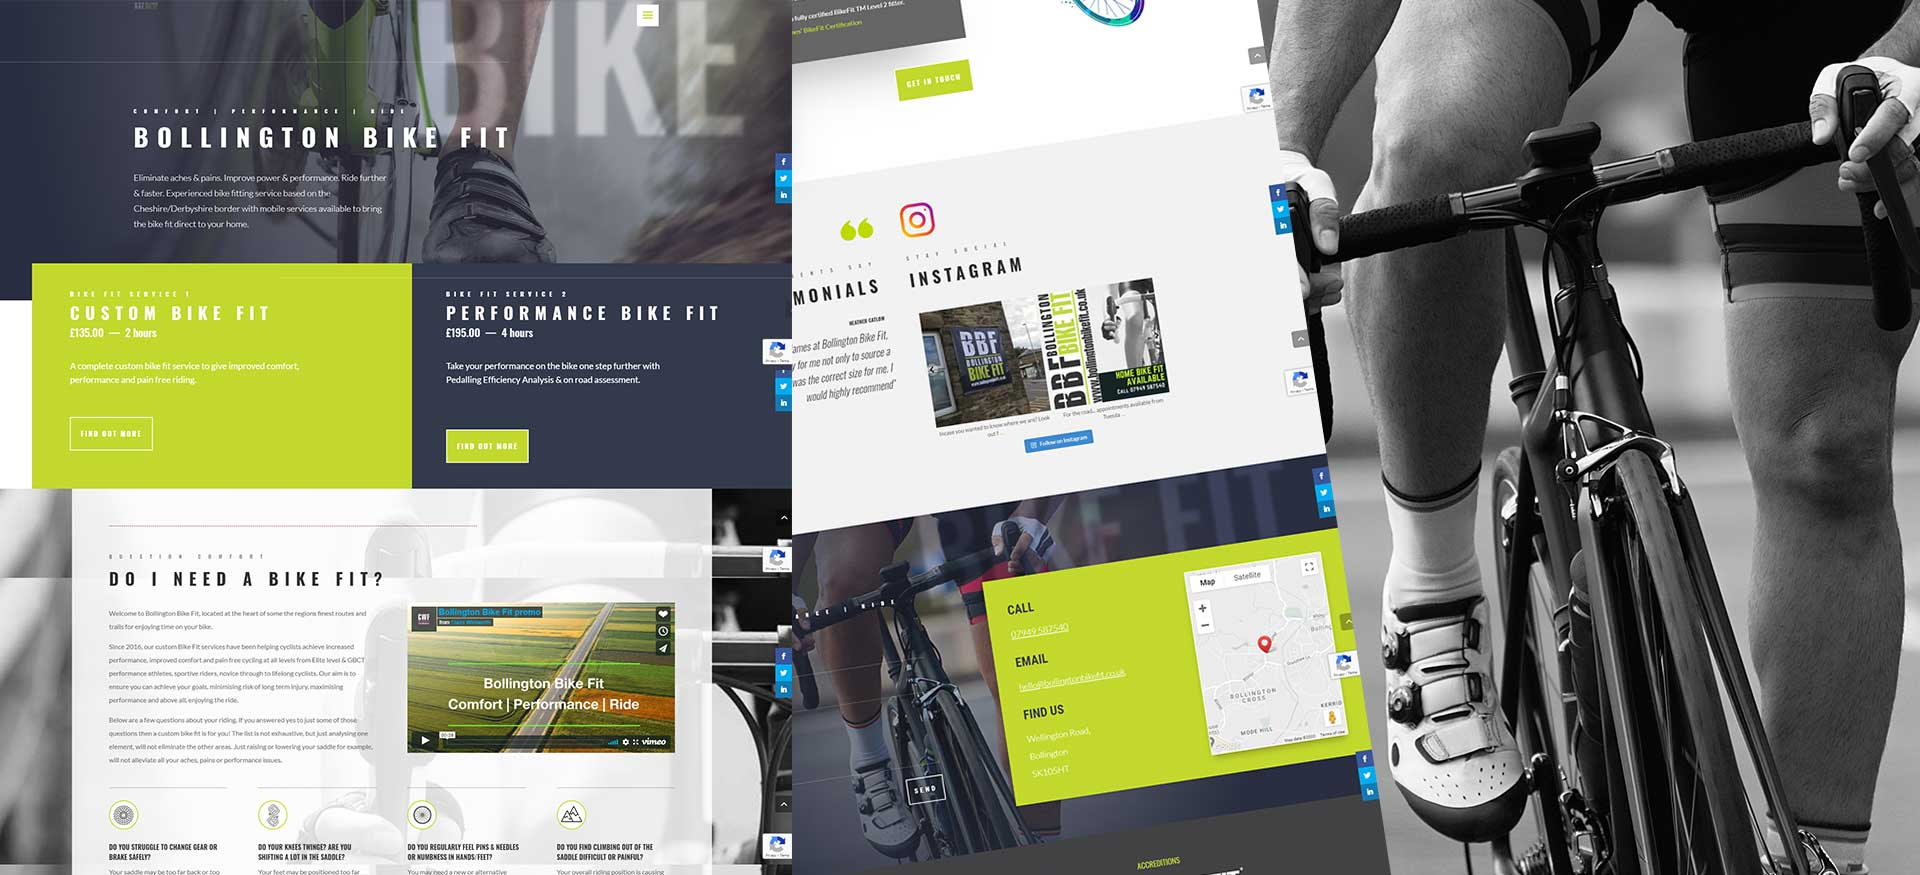 Bollington Bike Fit Online Booking Website by PepperStreet Web Design